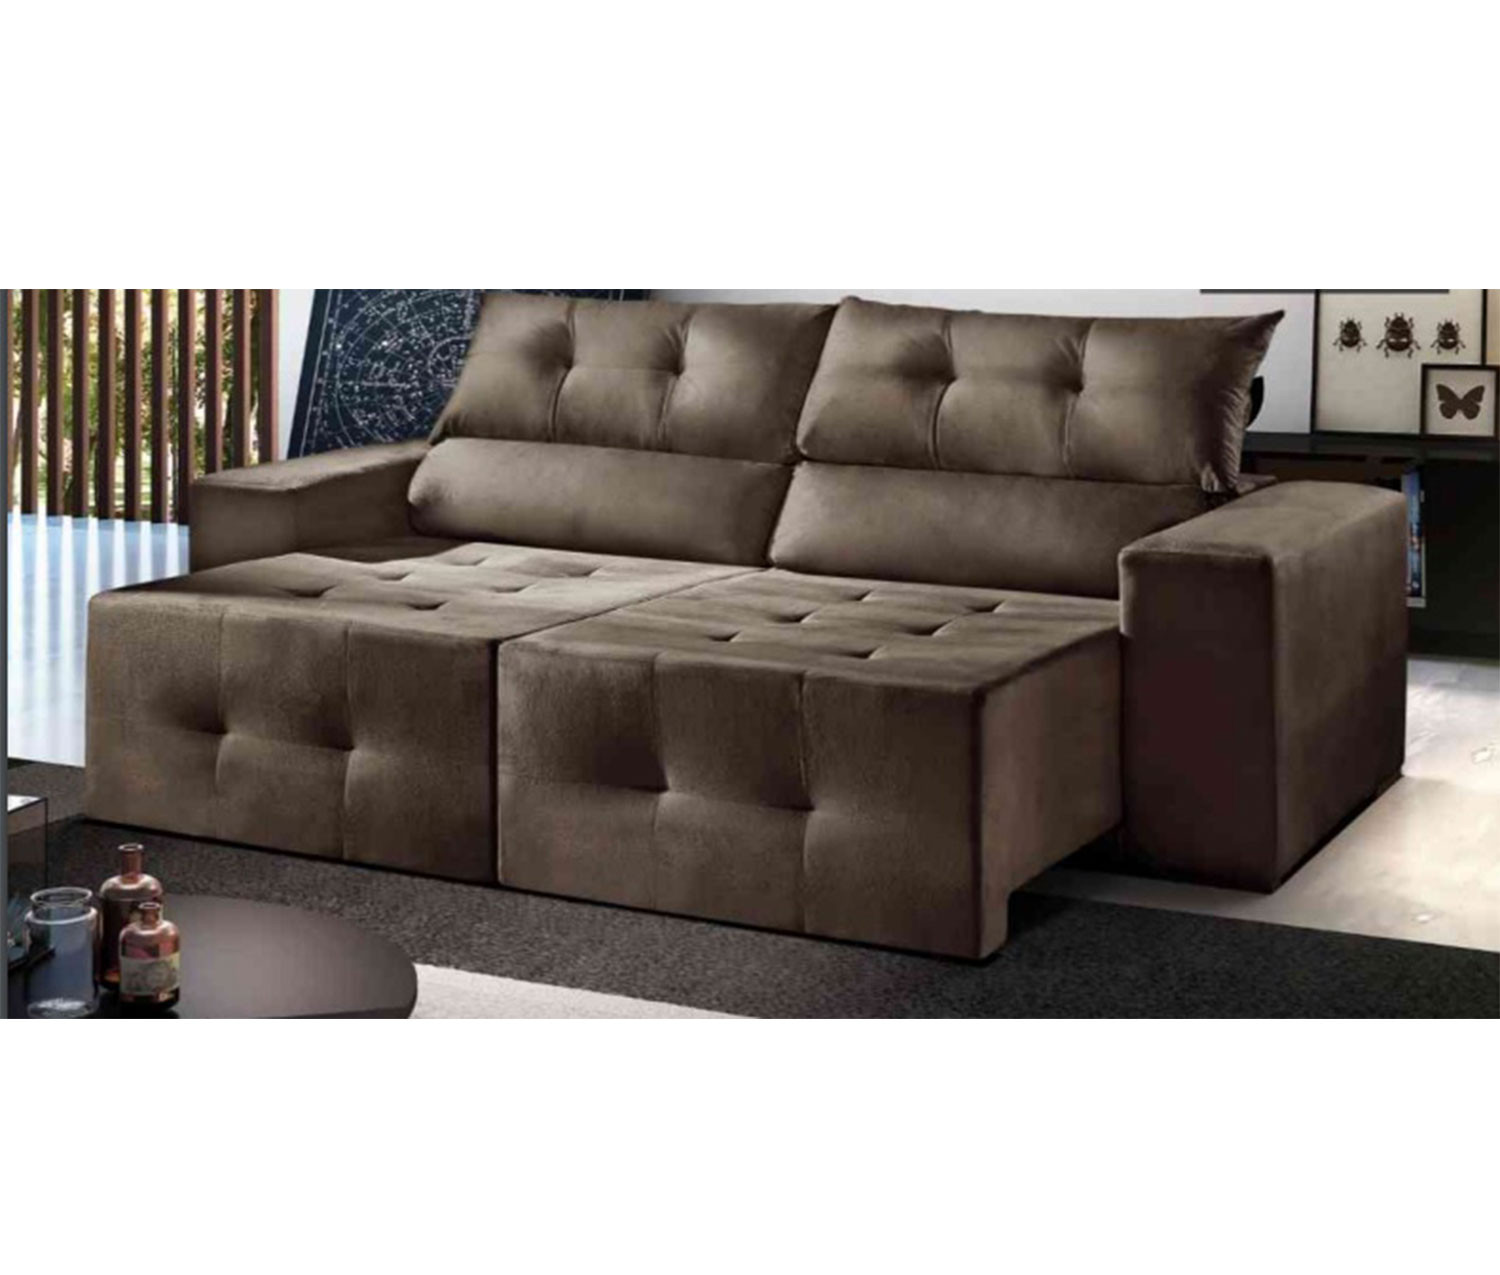 Sofa Retratil Uba Mg Sofa Retratil Reclinavel Atlanta 1 80 Mts Até 2 30 Mts Bymobille